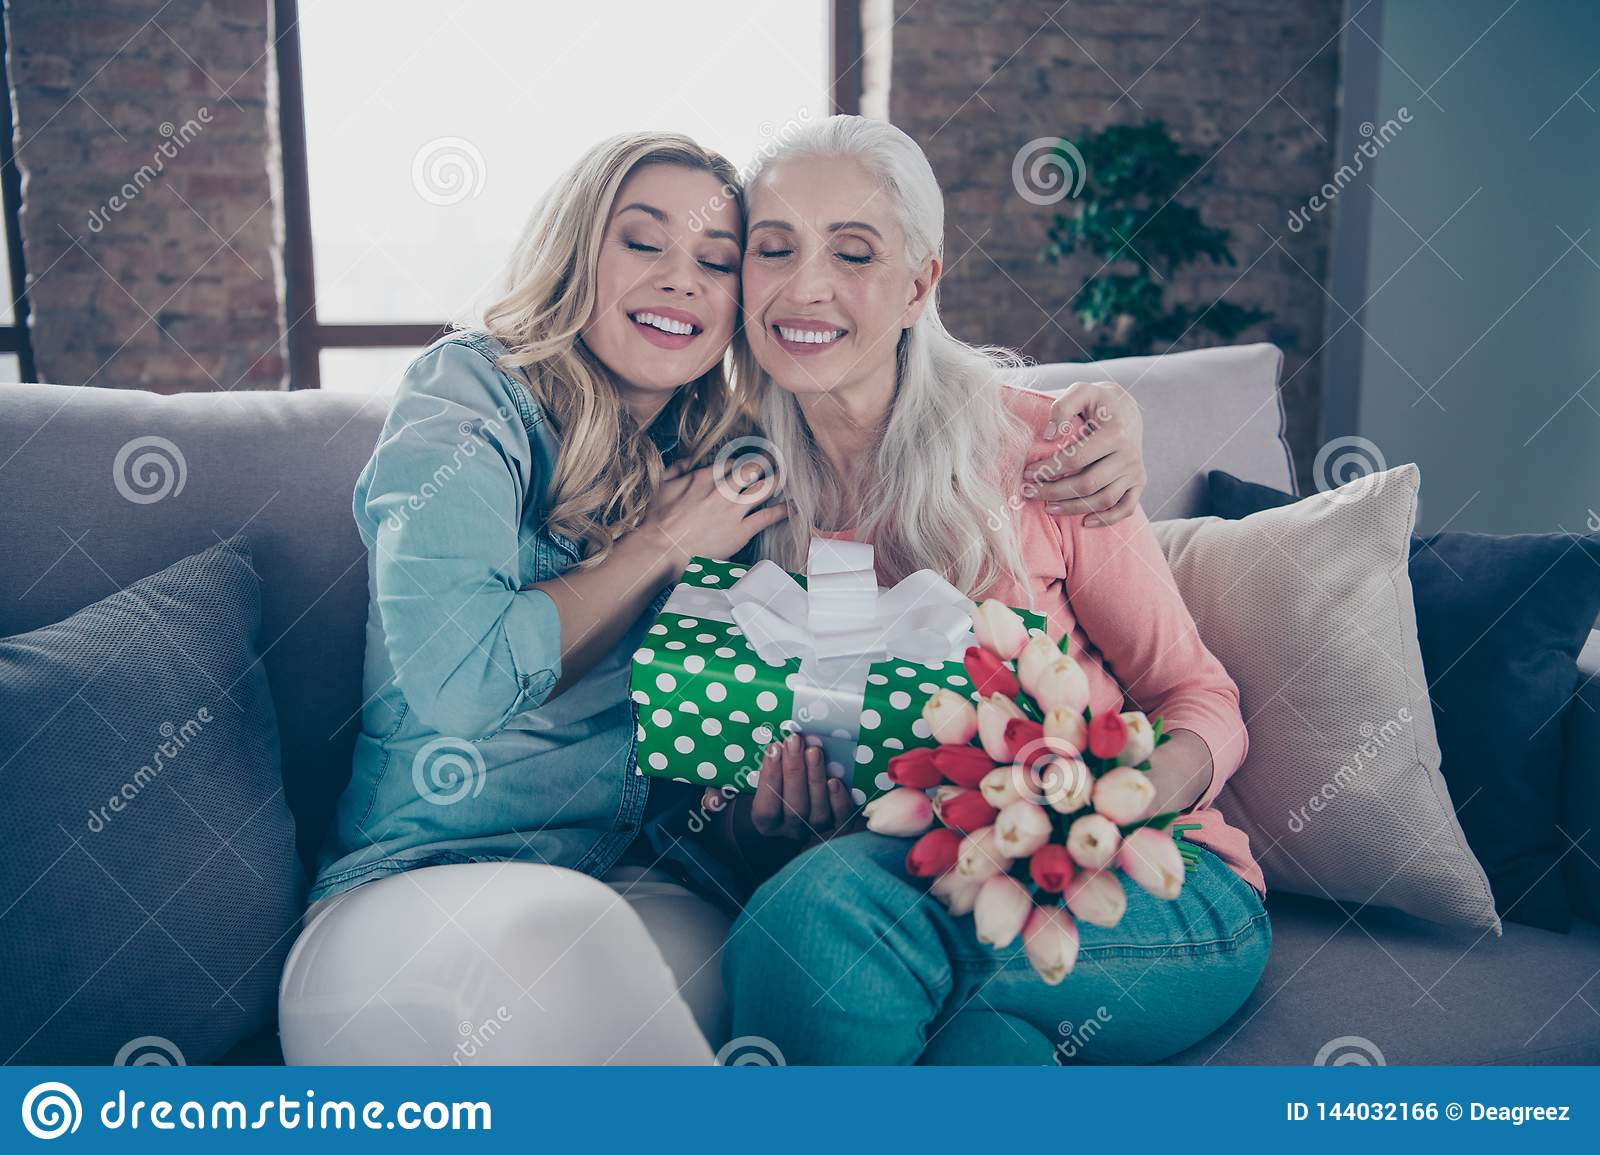 Close up photo two people eyes closed she her ladies grandmother grandchildren visit birthday party deliver giftbox